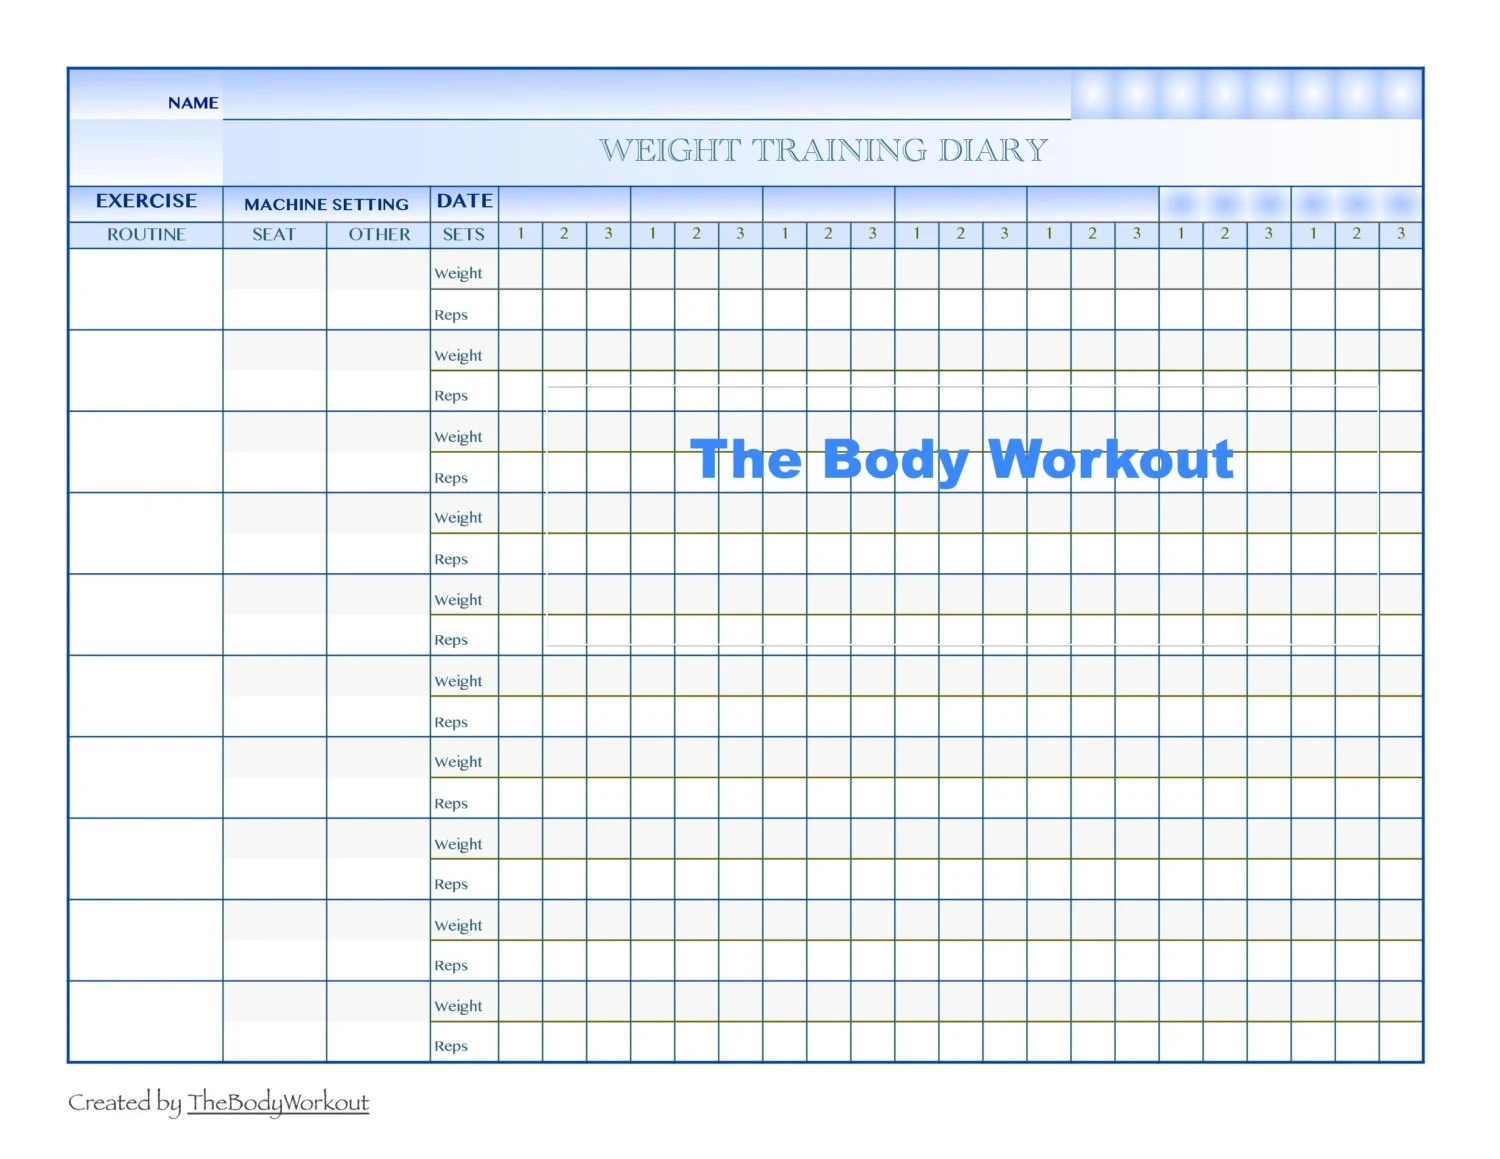 Workout Log Health Planner Weight Training Log Fitness Etsy